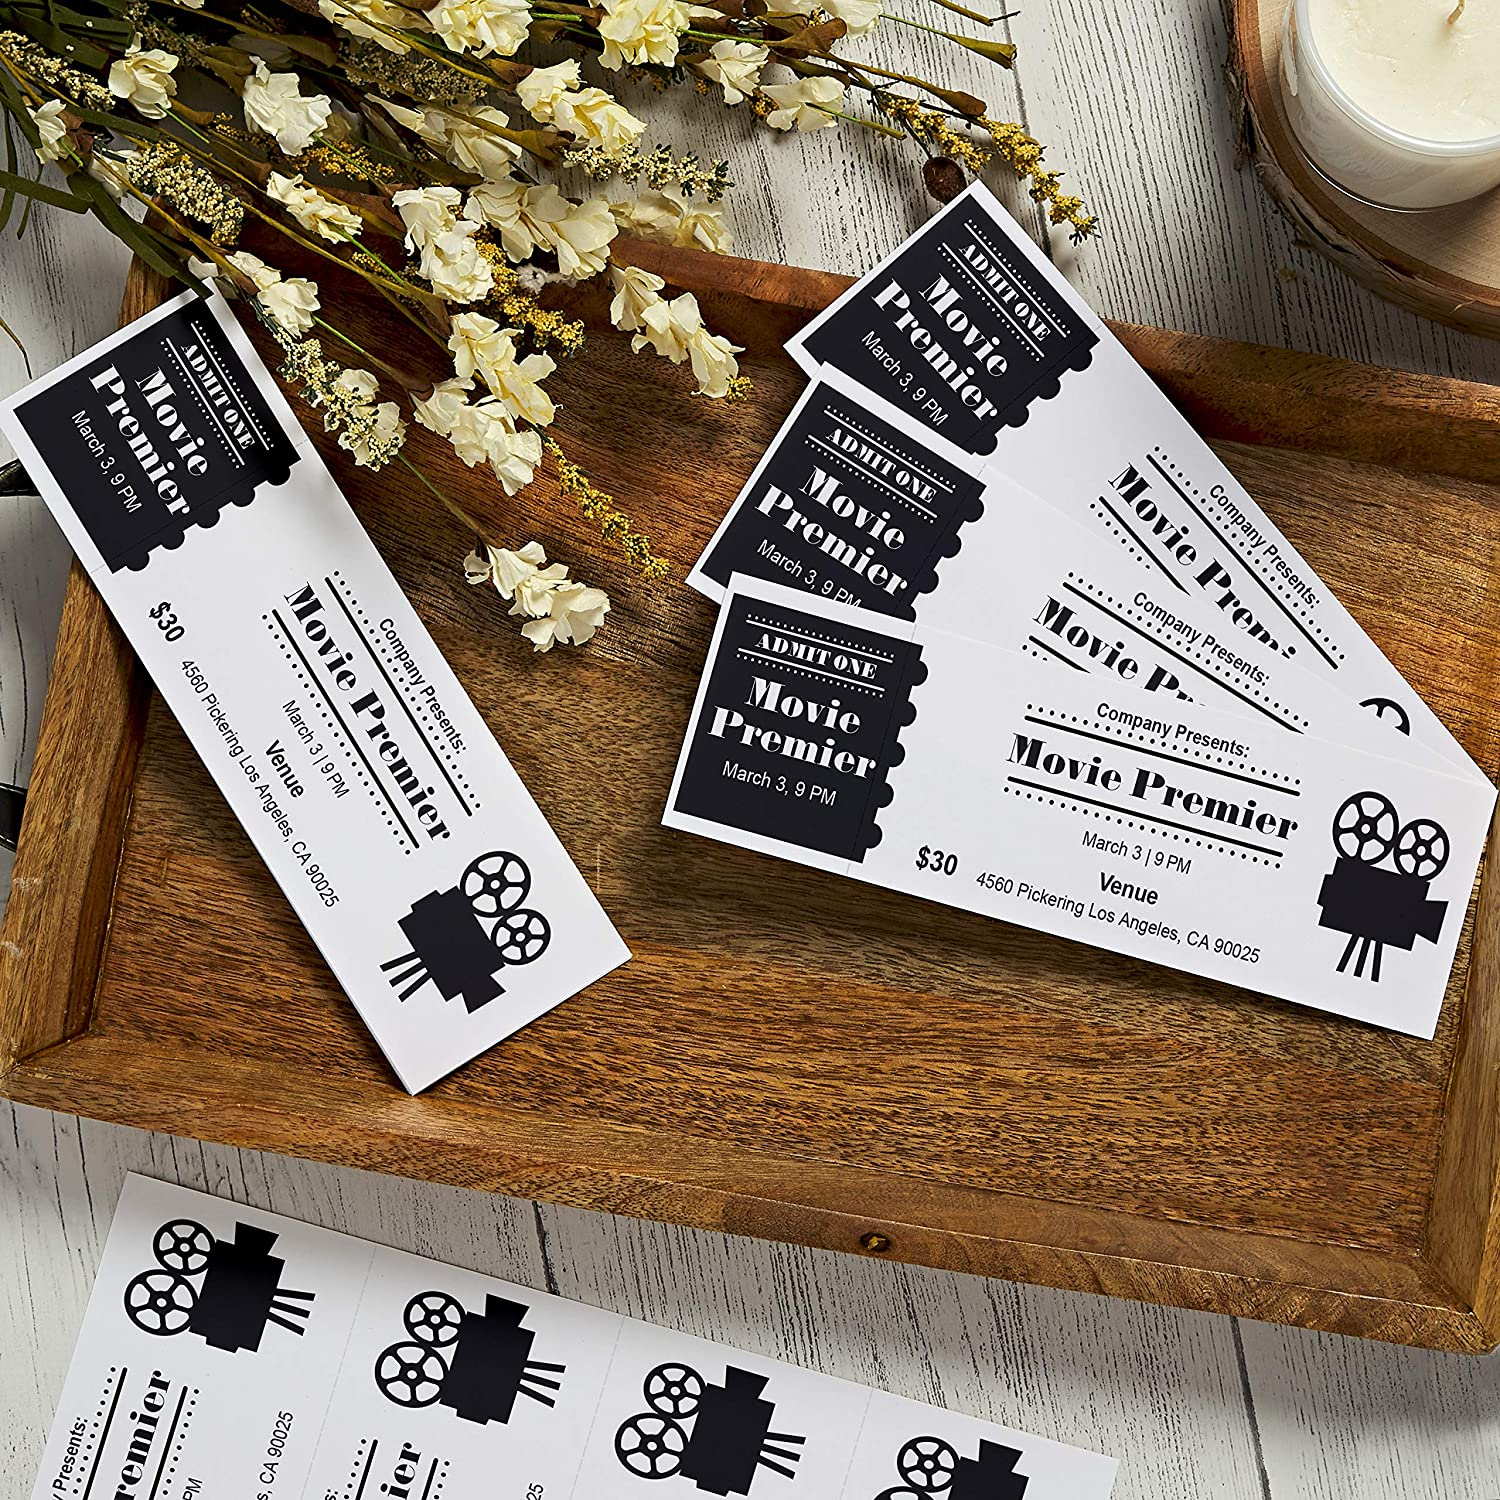 "Avery Printable Tickets, 2.75"" x 8.5"", Laser/Inkjet, 100 Tickets, Great for Raffle Tickets (16430), White, 4 Tickets per Sheet"